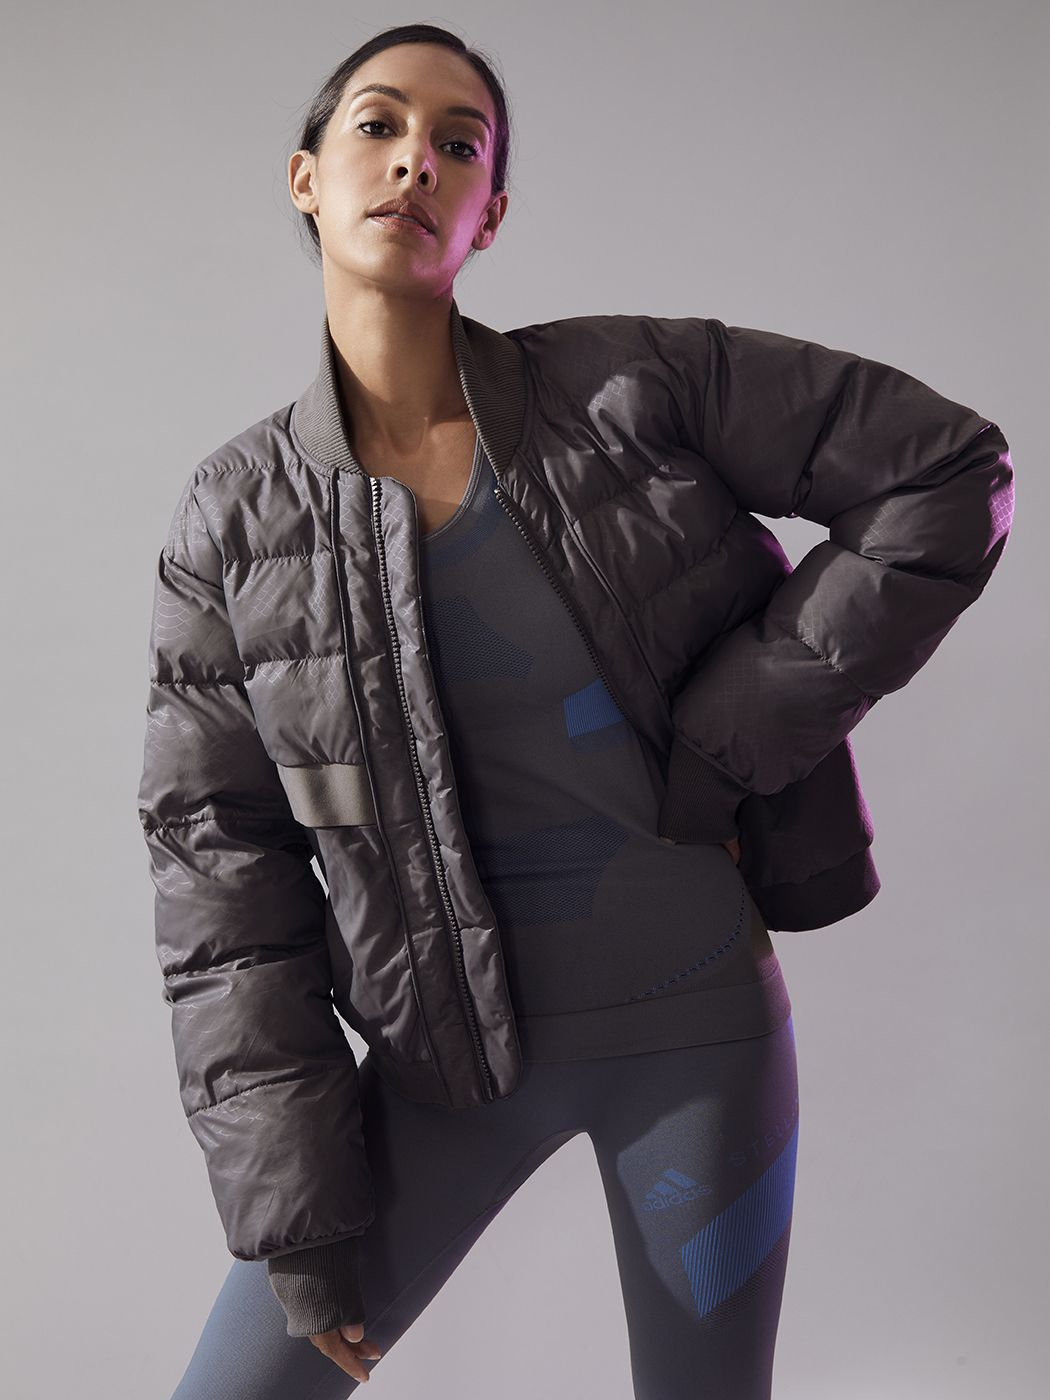 699e551ddede Essentials Short Padded Jacket in Granite by Adidas By Stella Mccartney  from Carbon38